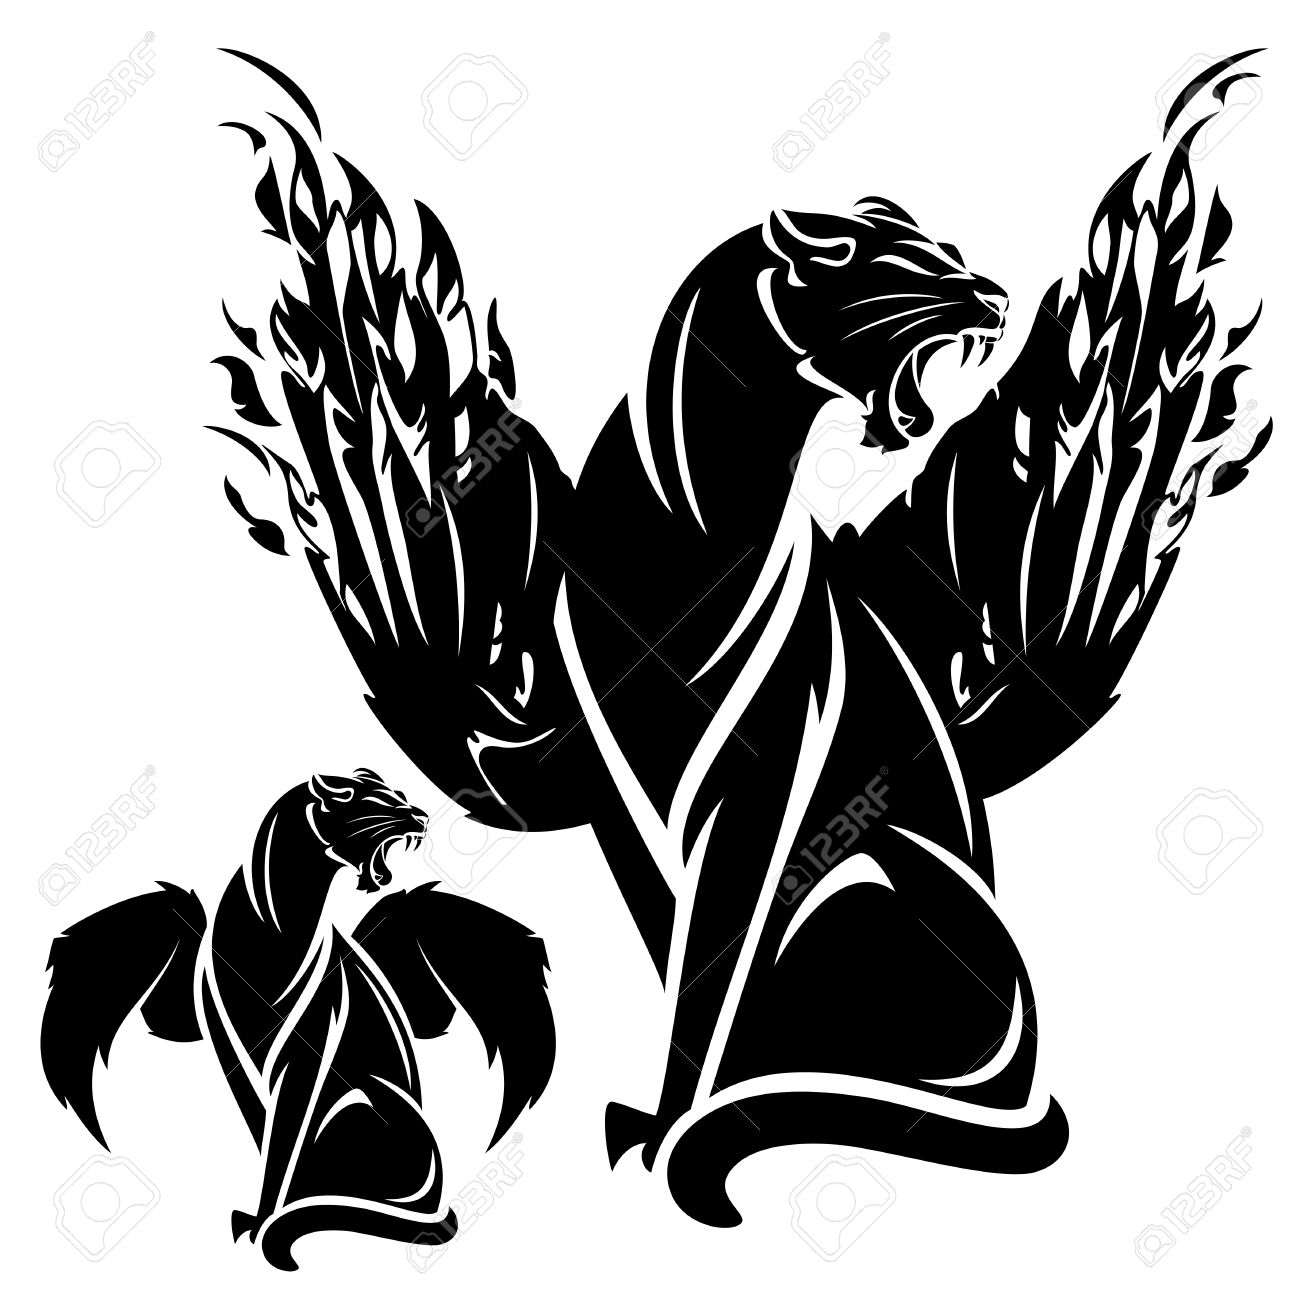 Set with africa animals black white stock vector 169 insima - Profile Wings Furious Winged Panther Black And White Fantasy Animal Vector Design Illustration